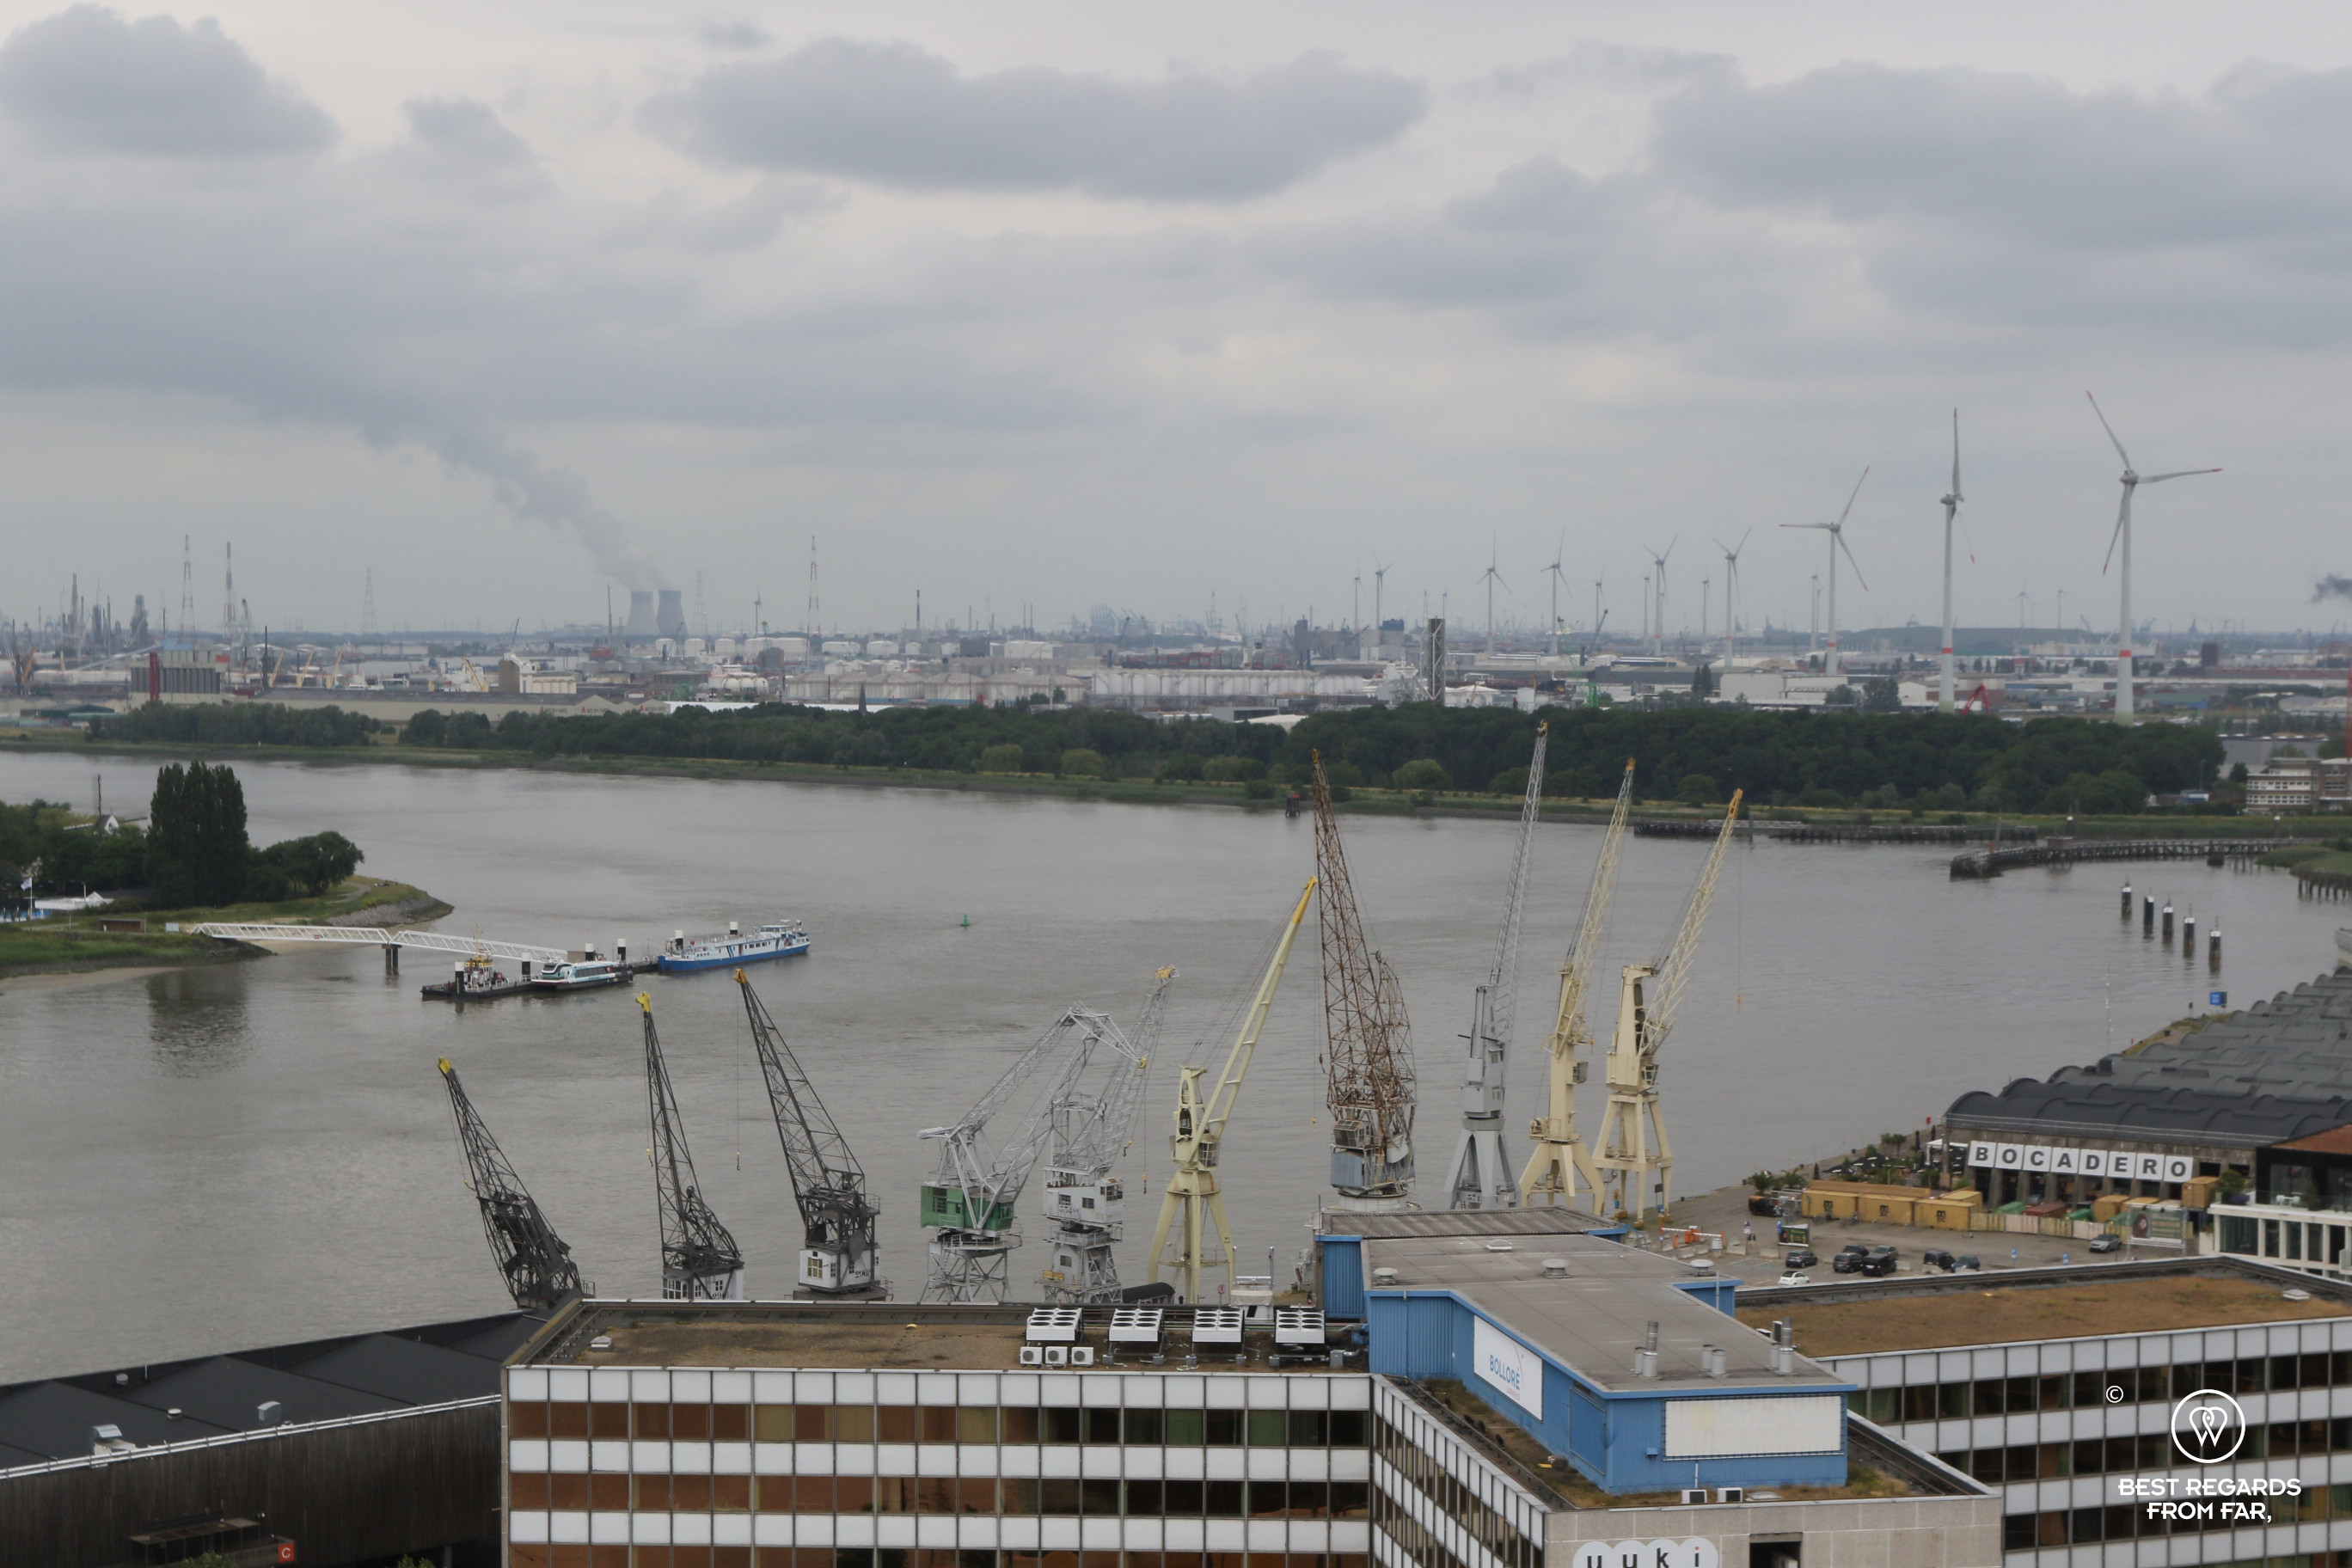 View on the industrial harbour of Antwerp from the rooftop of the MAS building